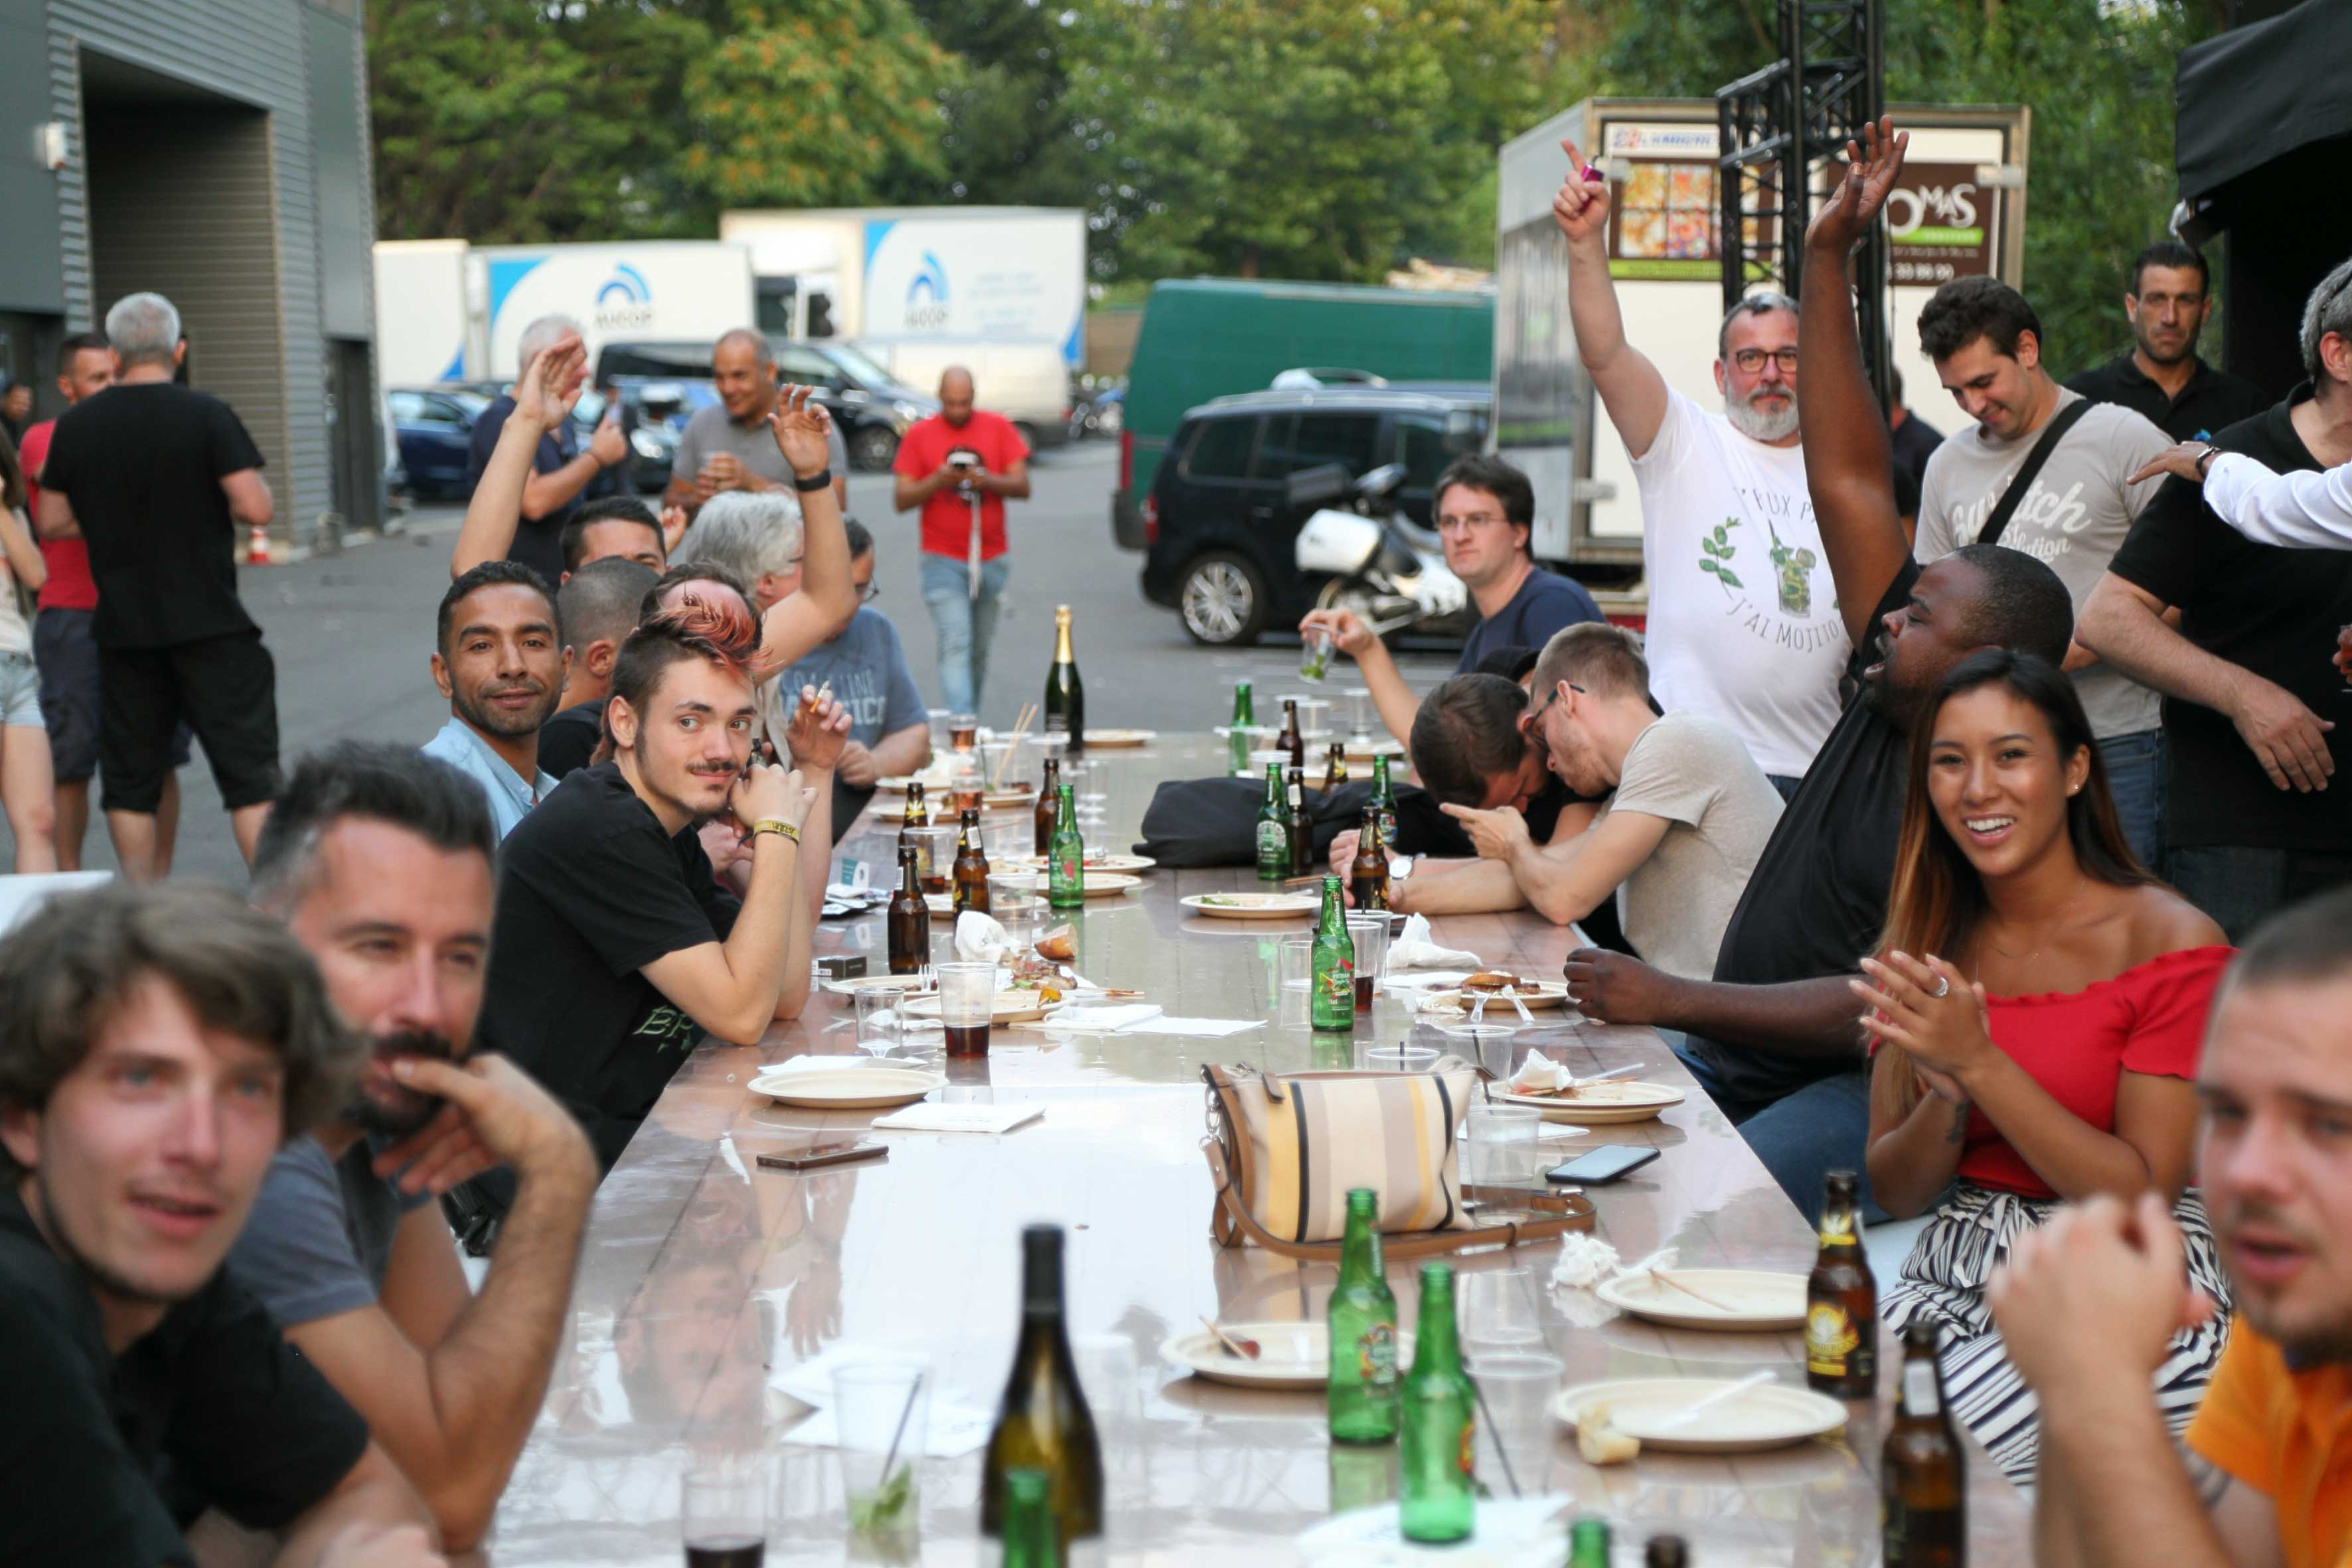 aucop-soiree-wissous-barbecue-29-juin-music-events-agency-groupe-hegemony